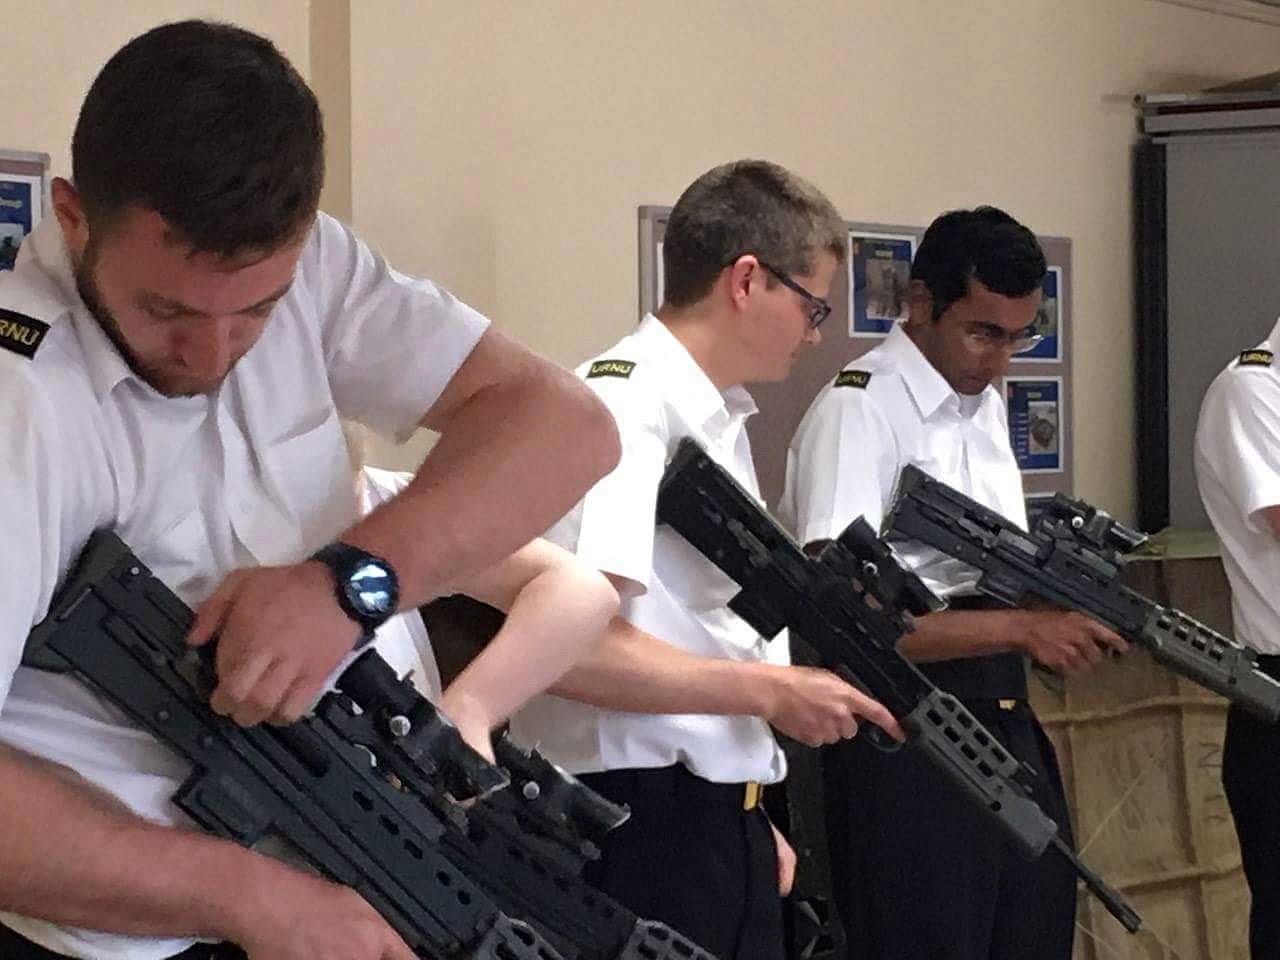 Rifle training for the Oxford URNU